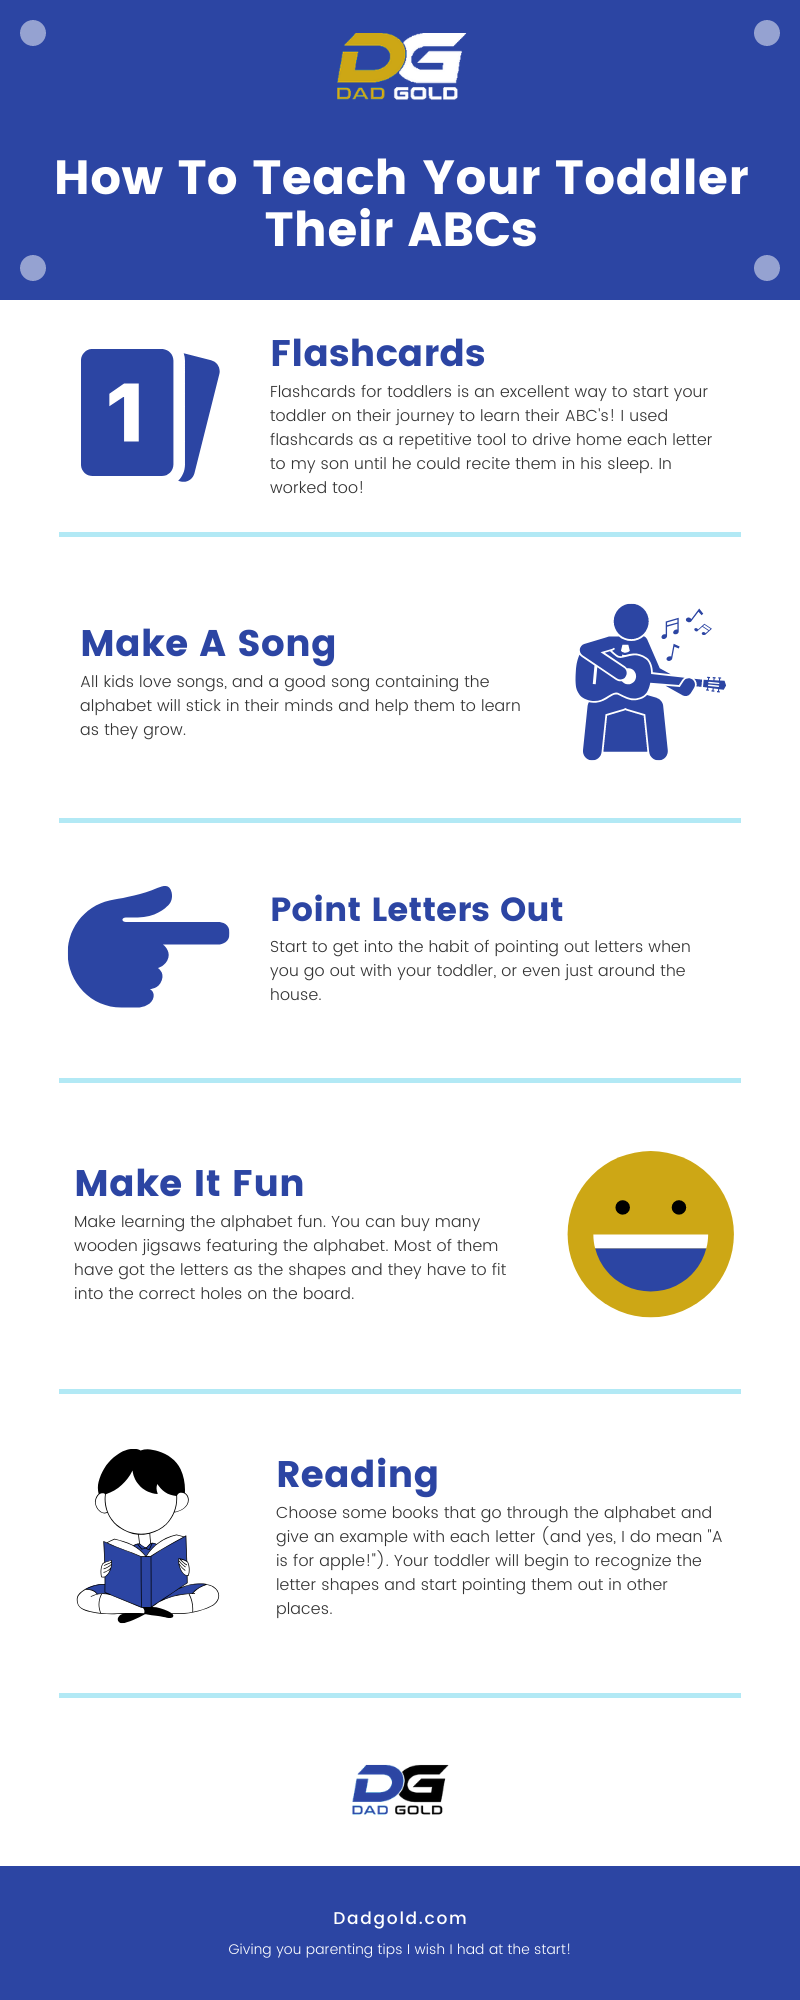 How To Teach Your Toddler Their ABCs in 5 ways Infographic